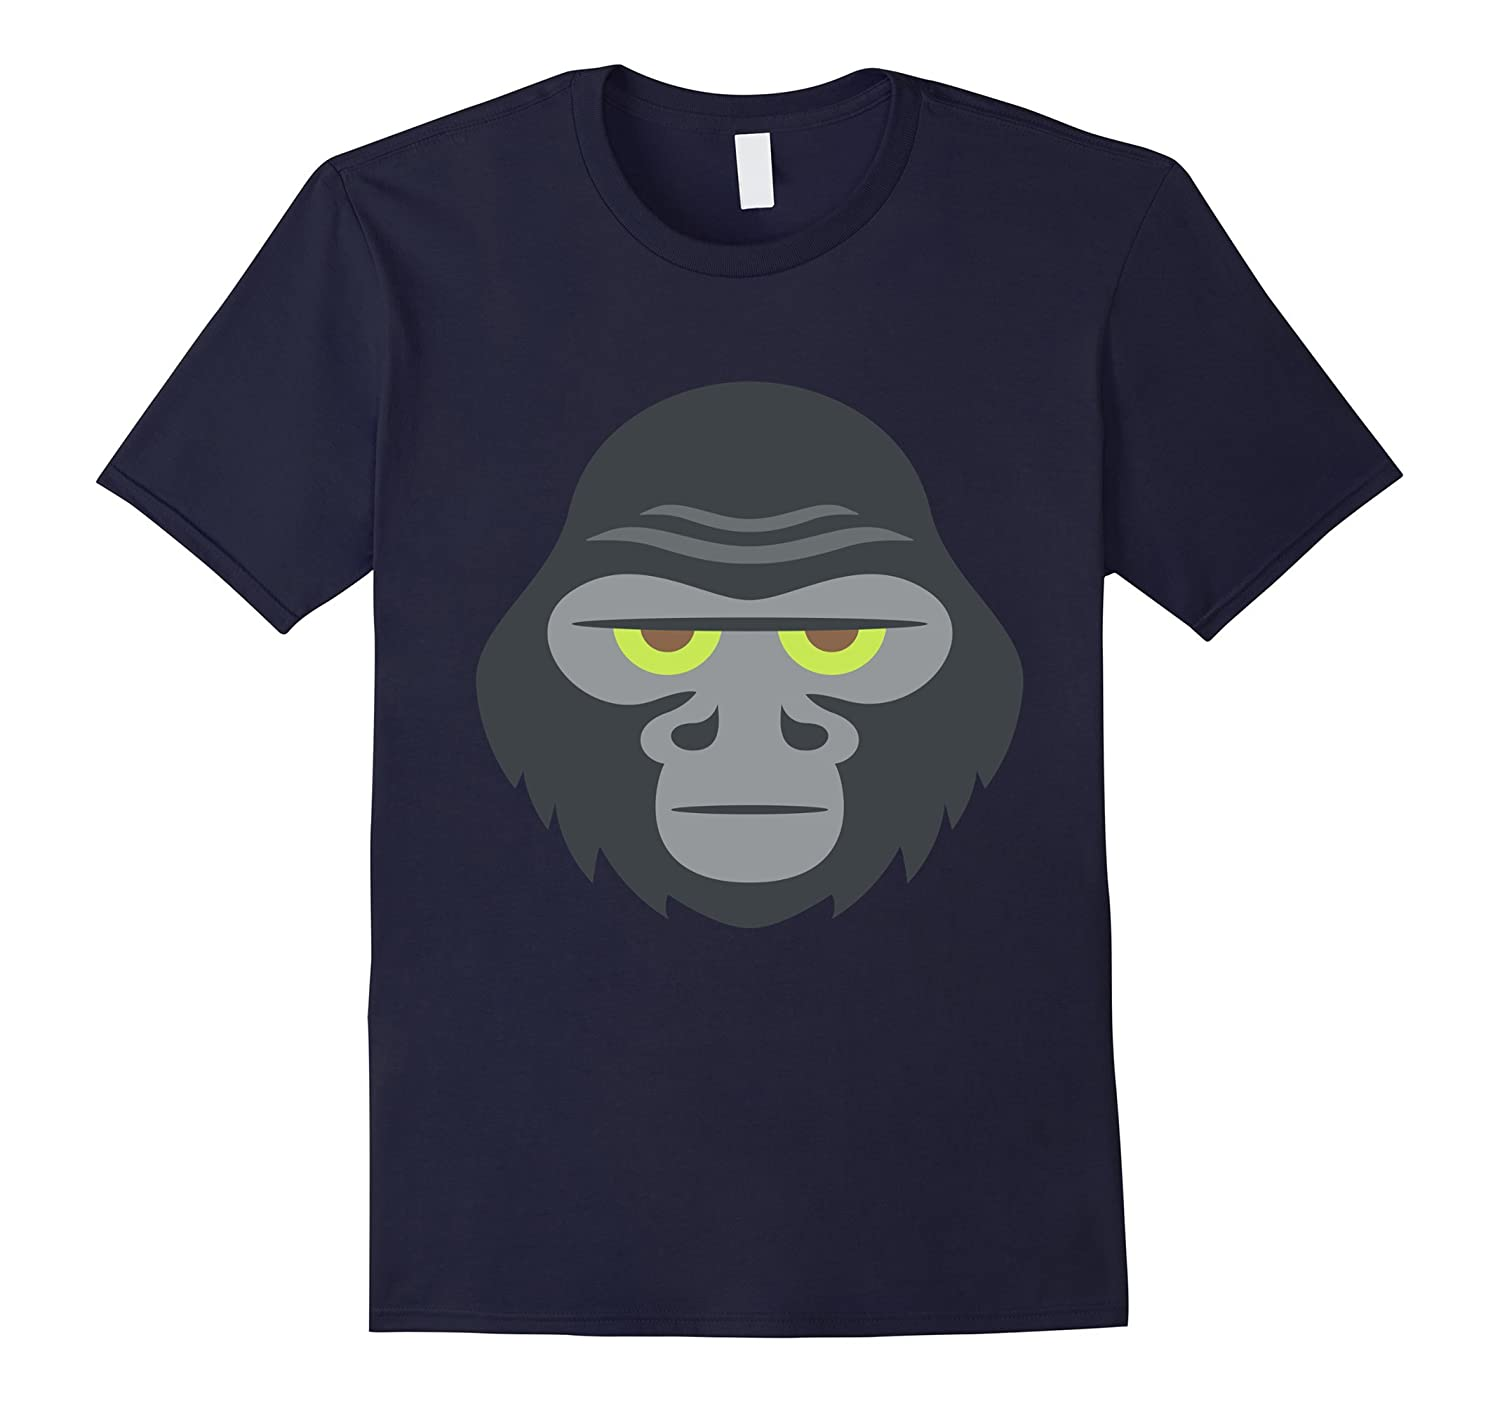 Gorilla Emoji Costume Fun Funny Black T Shirt Tee Men Mask-BN